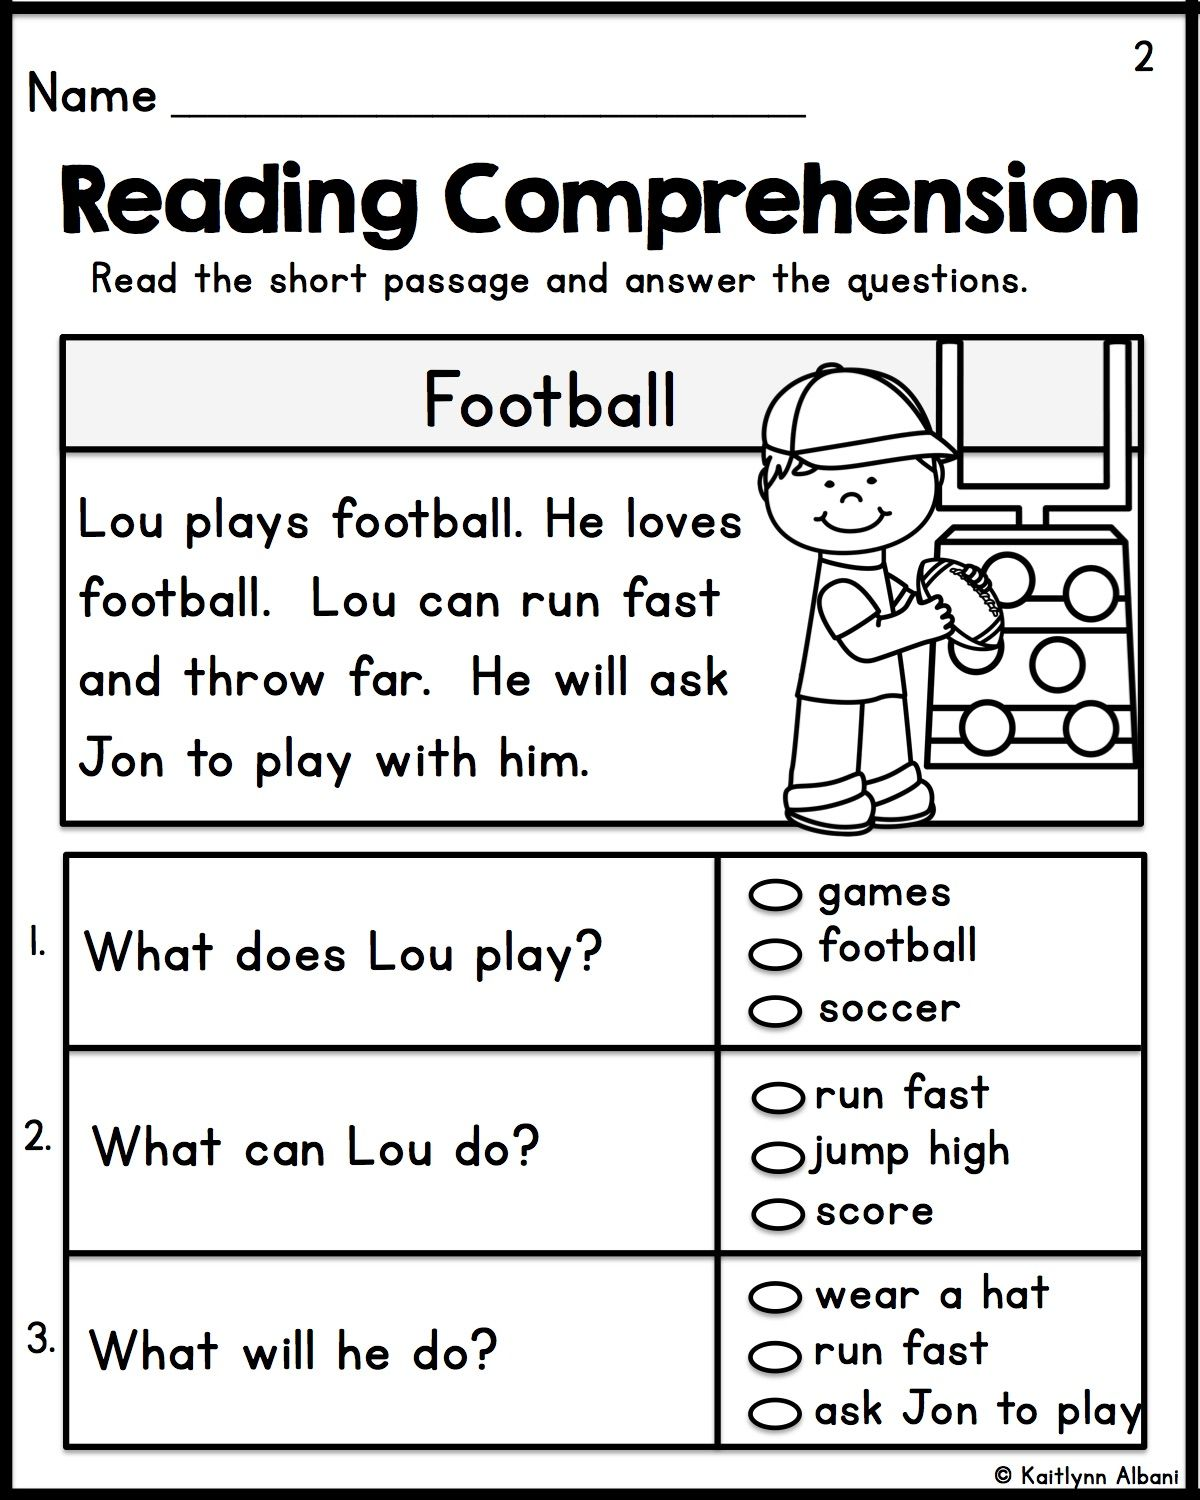 Kindergarten Reading Comprehension Passages